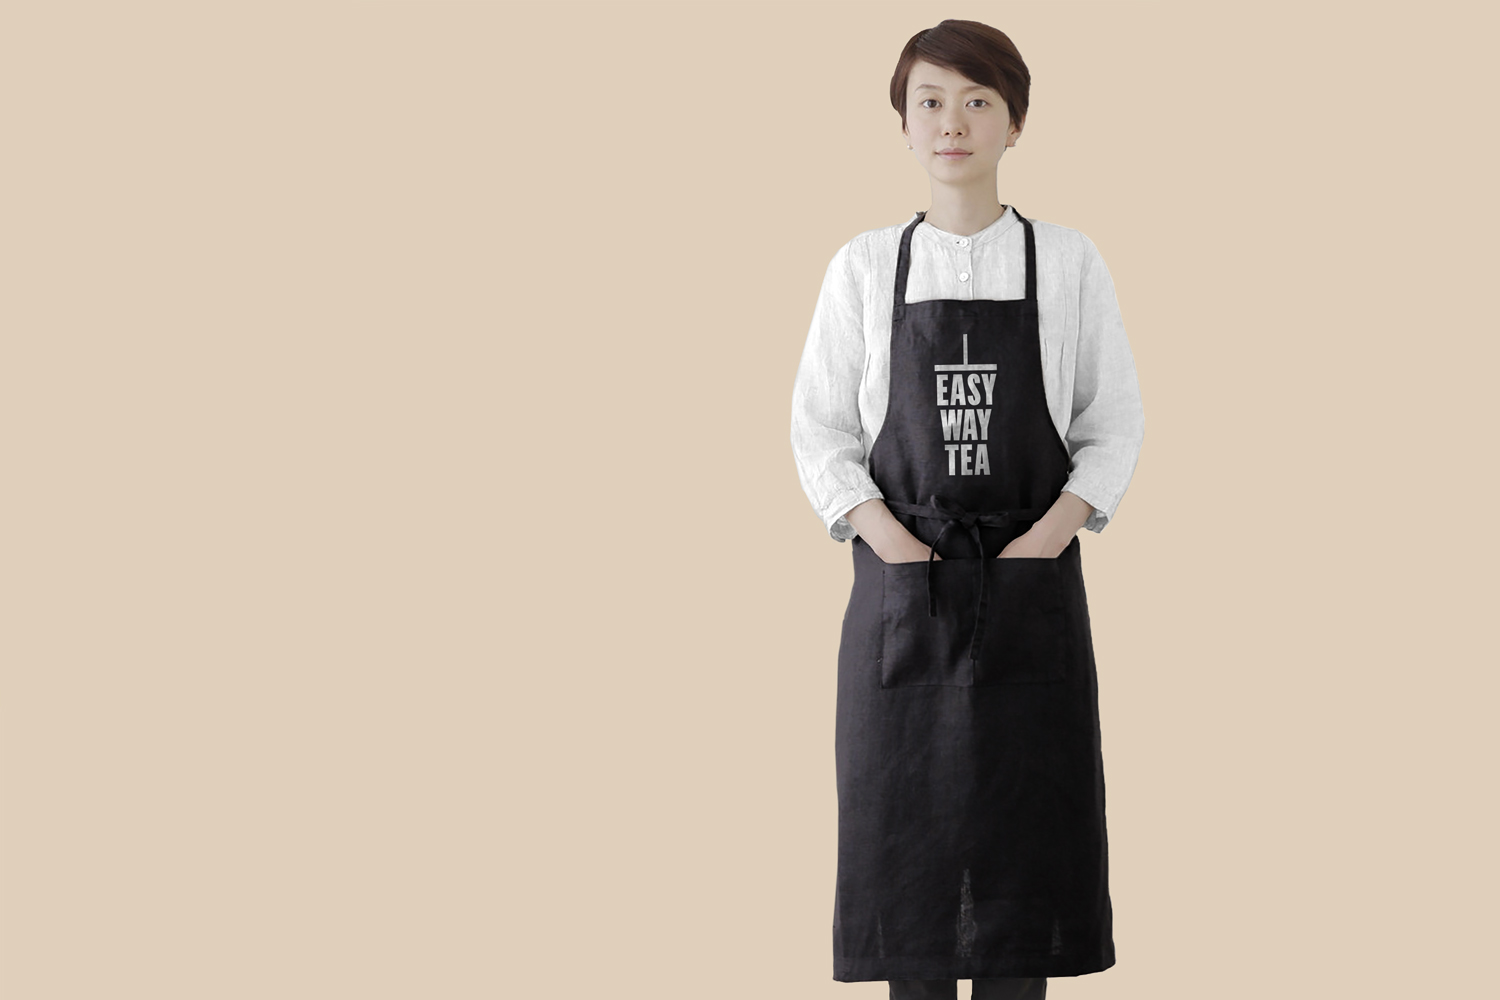 easy-way-tea-10-staff-uniforms